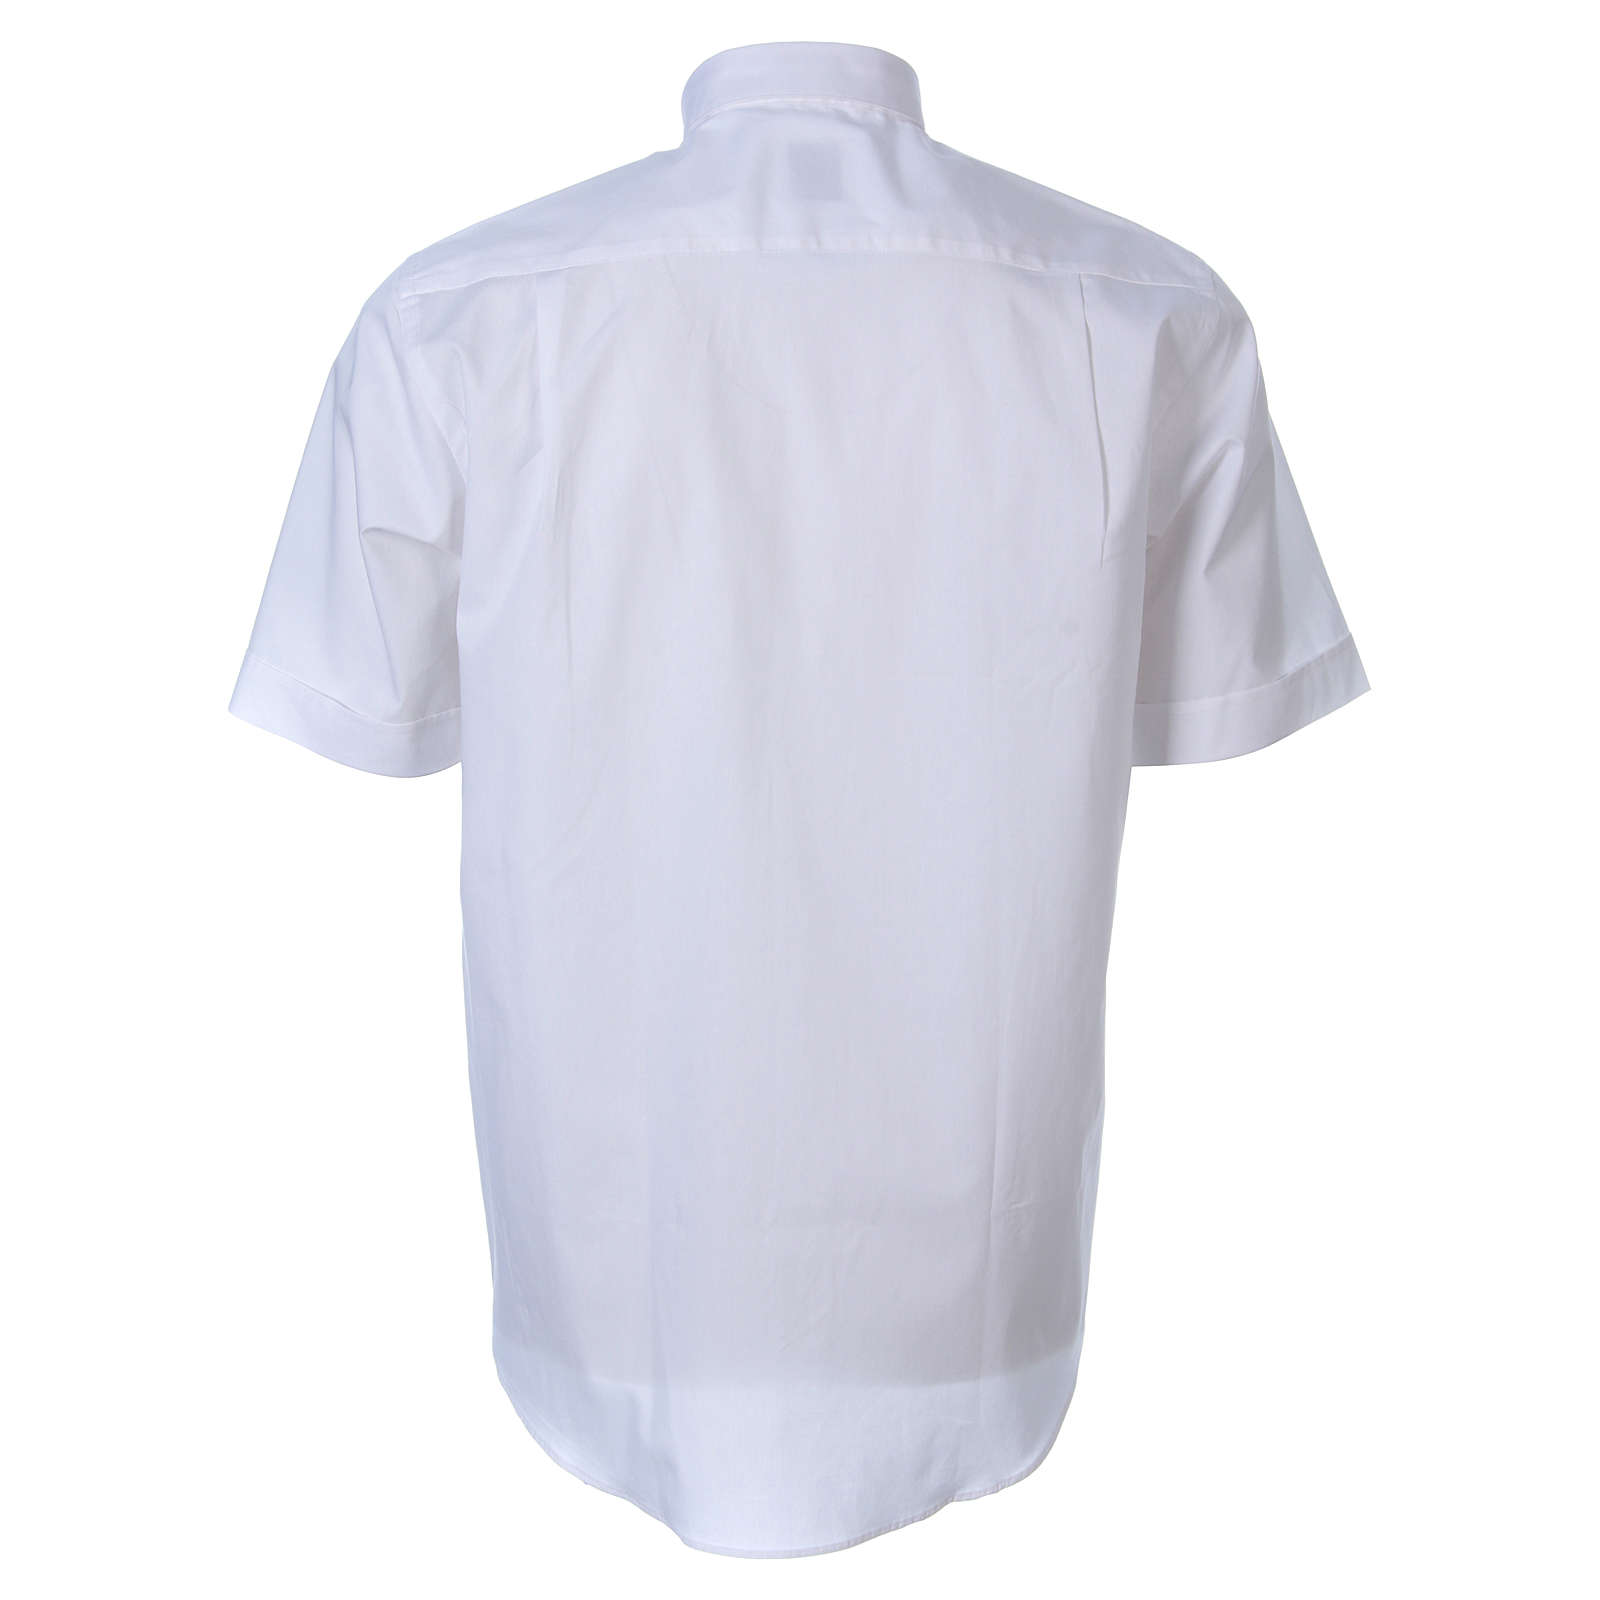 STOCK White short sleeve clergy shirt, poplin 4